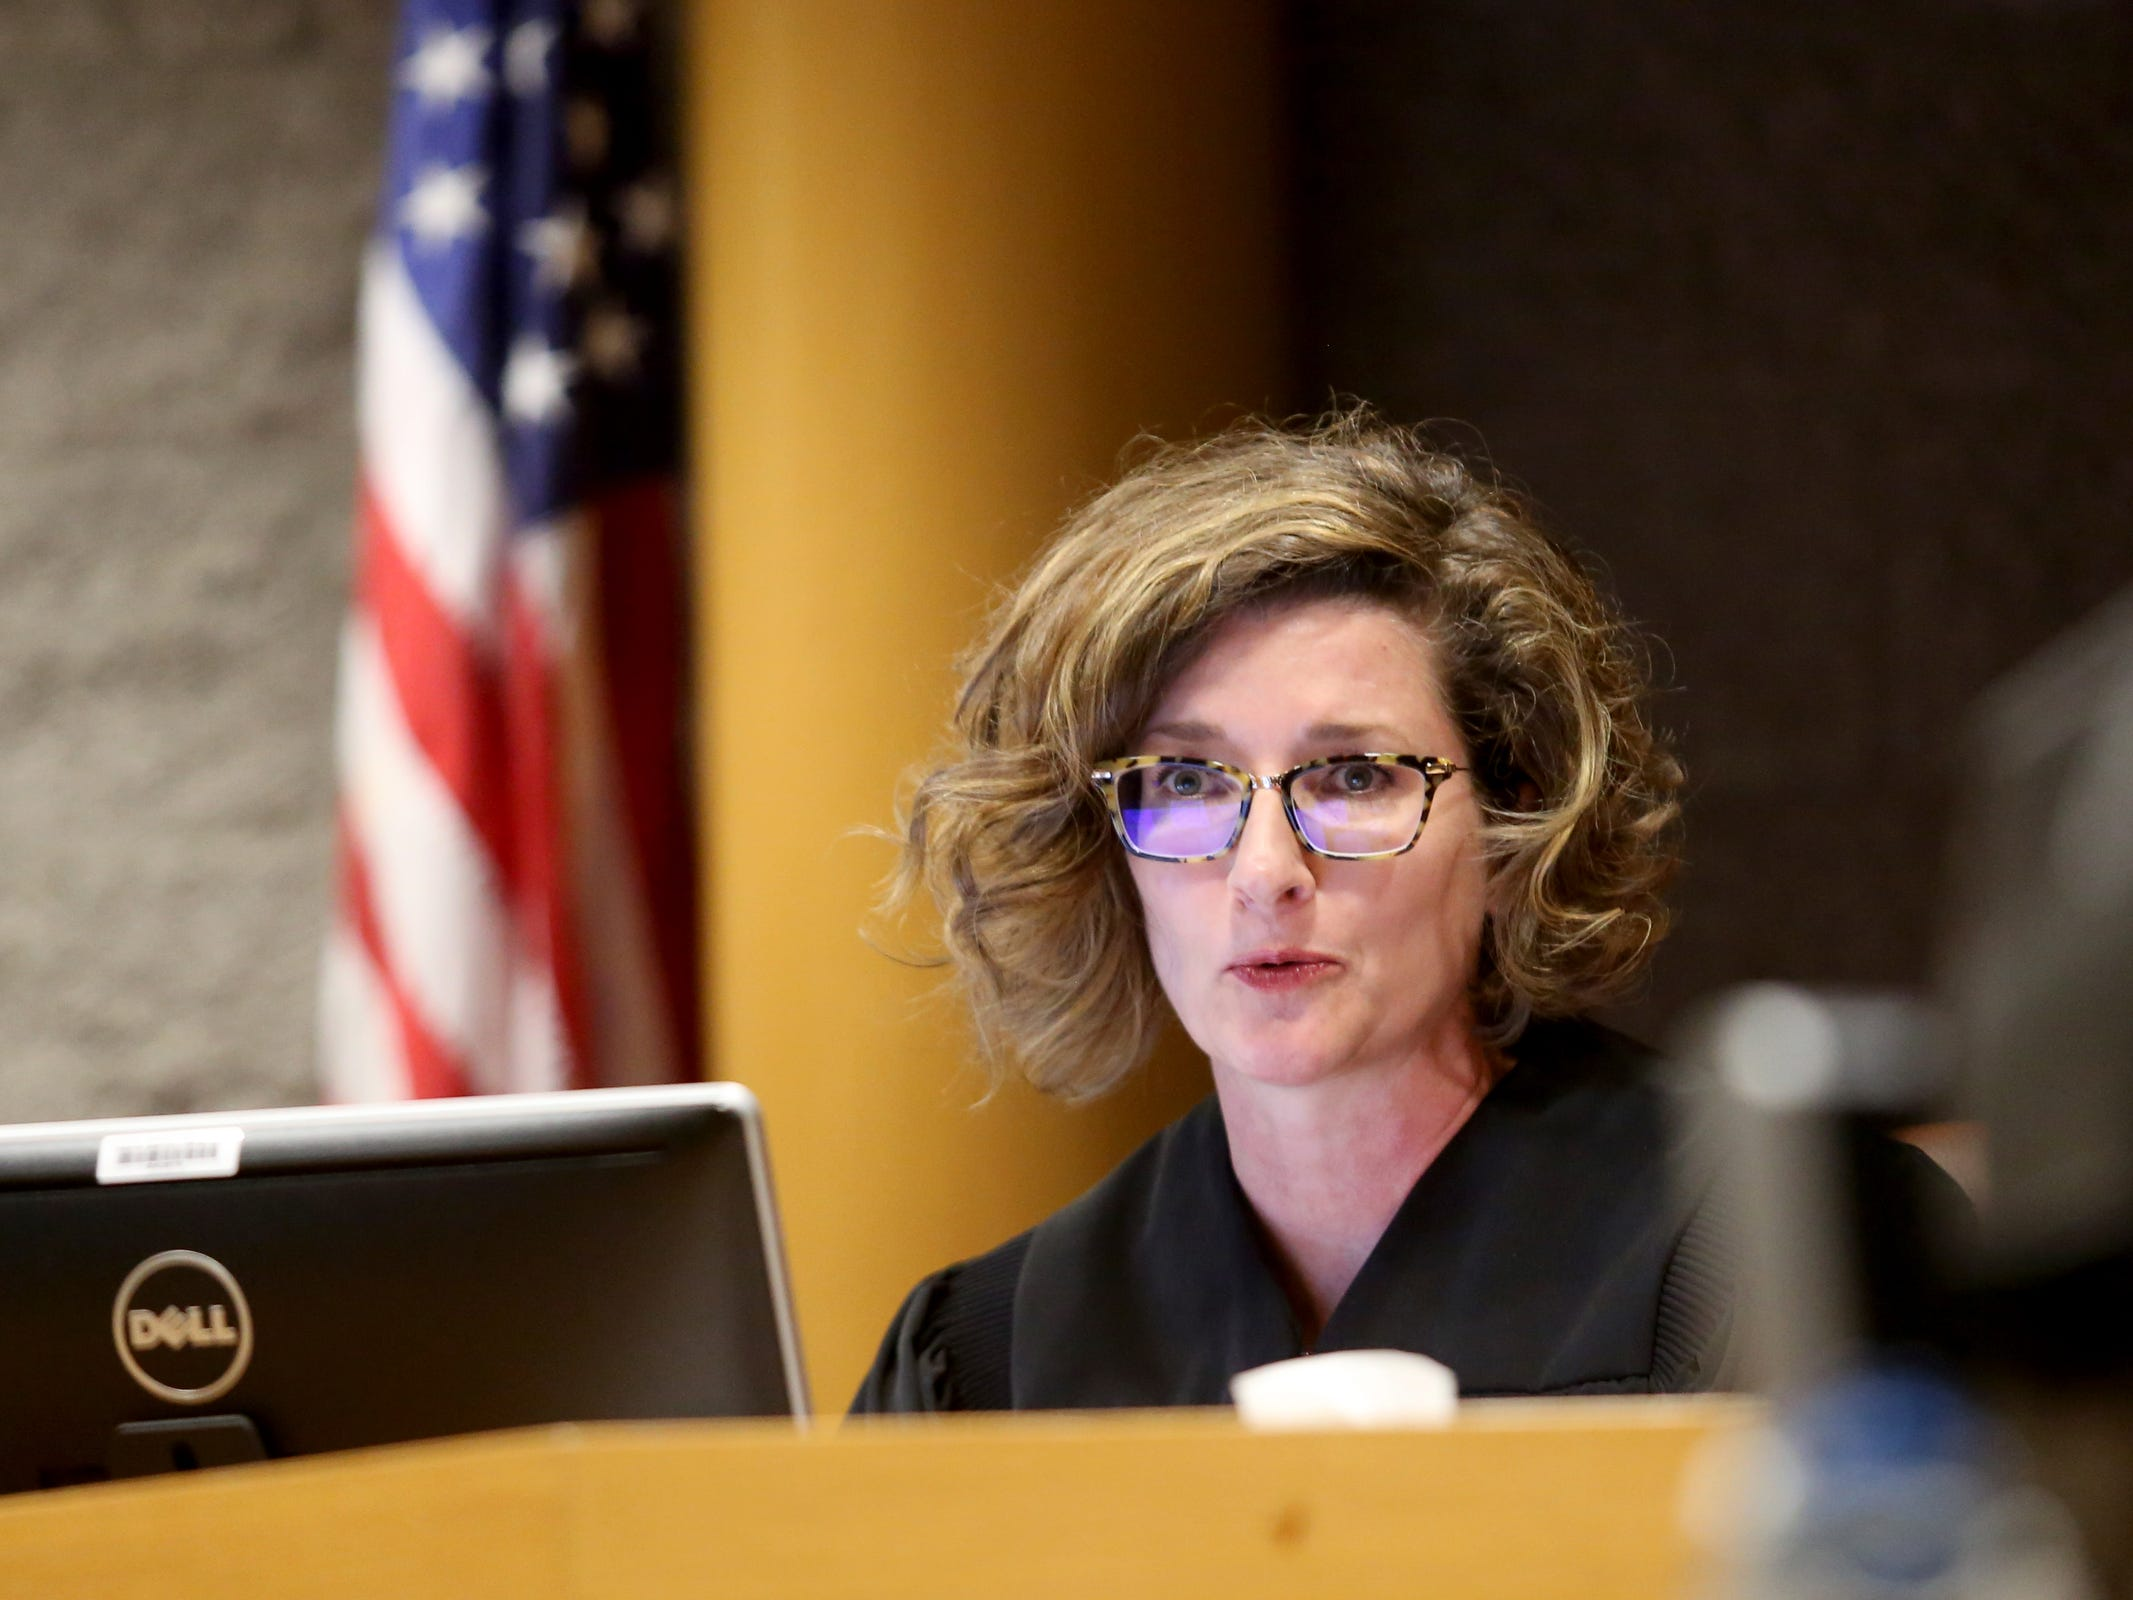 Judge Jennifer Gardiner speaks during an arraignment for Keonte Caldwell and Curtis Welch on two aggravated murder charges and one attempted aggravated murder charge at the Marion County Court Annex in Salem on May 9, 2019. Both men charged in the shooting are both being held without bail.